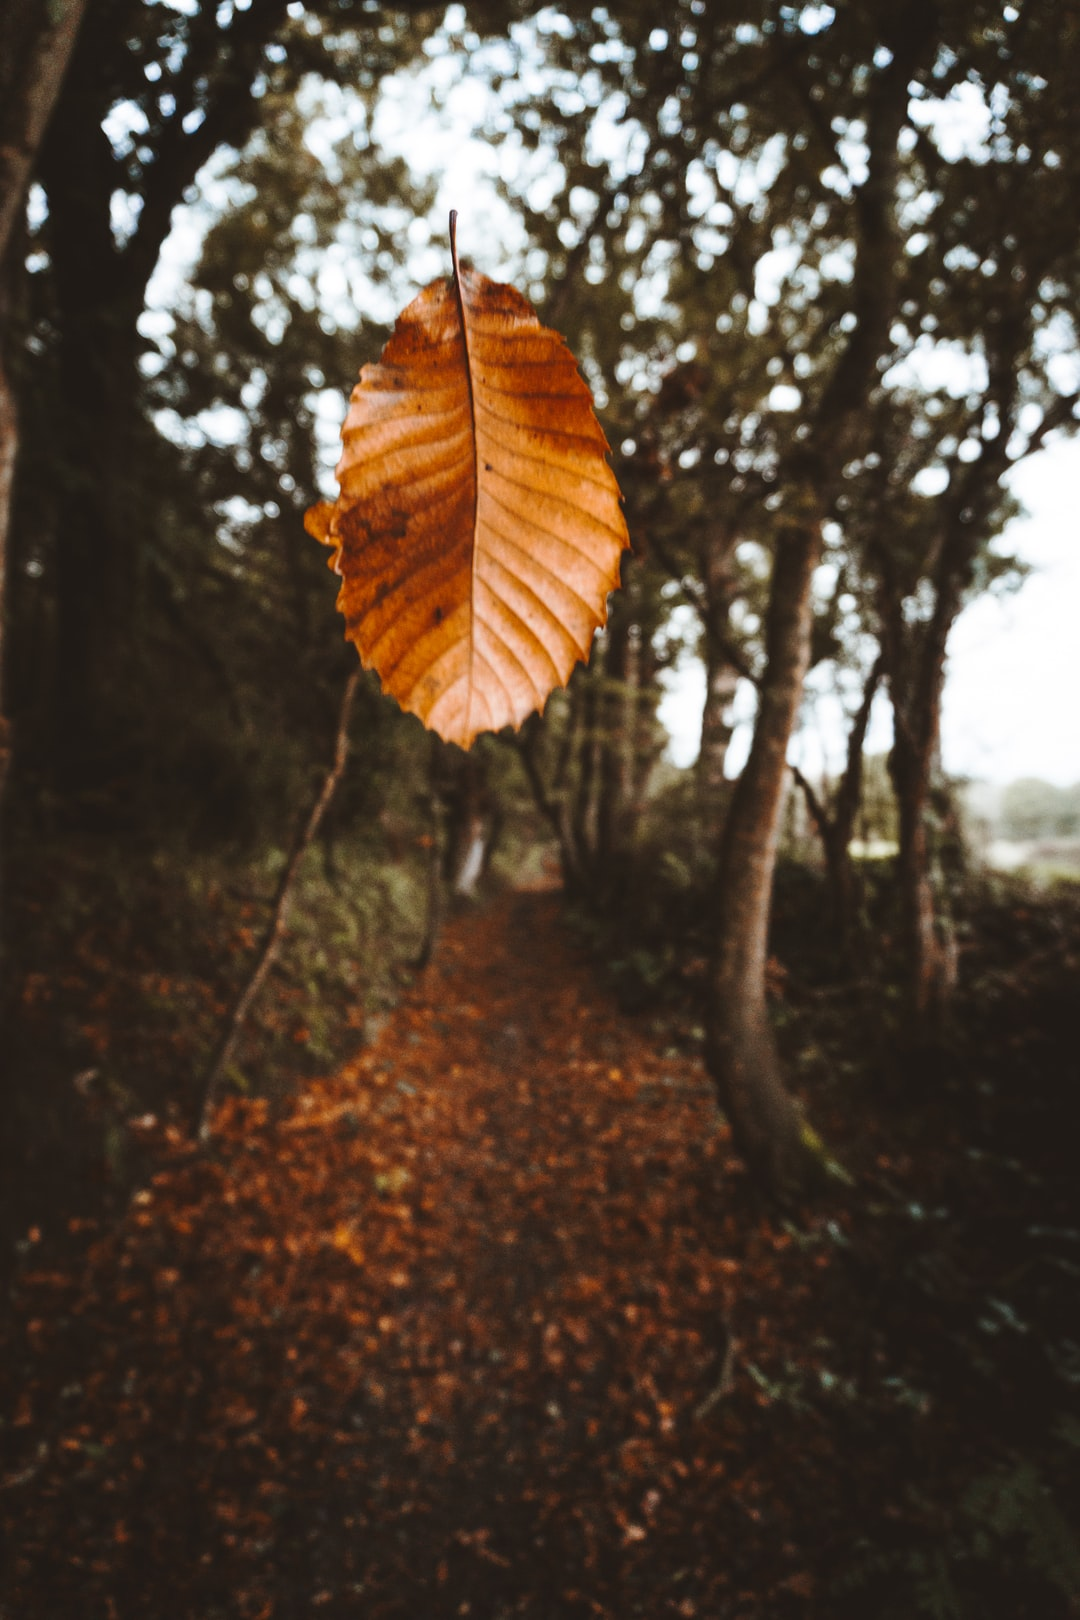 I was on this little path and I wanted to do some film shot. And I had an idea, I took this leaf, setup my camera to burst mode and Boom I took this shot.